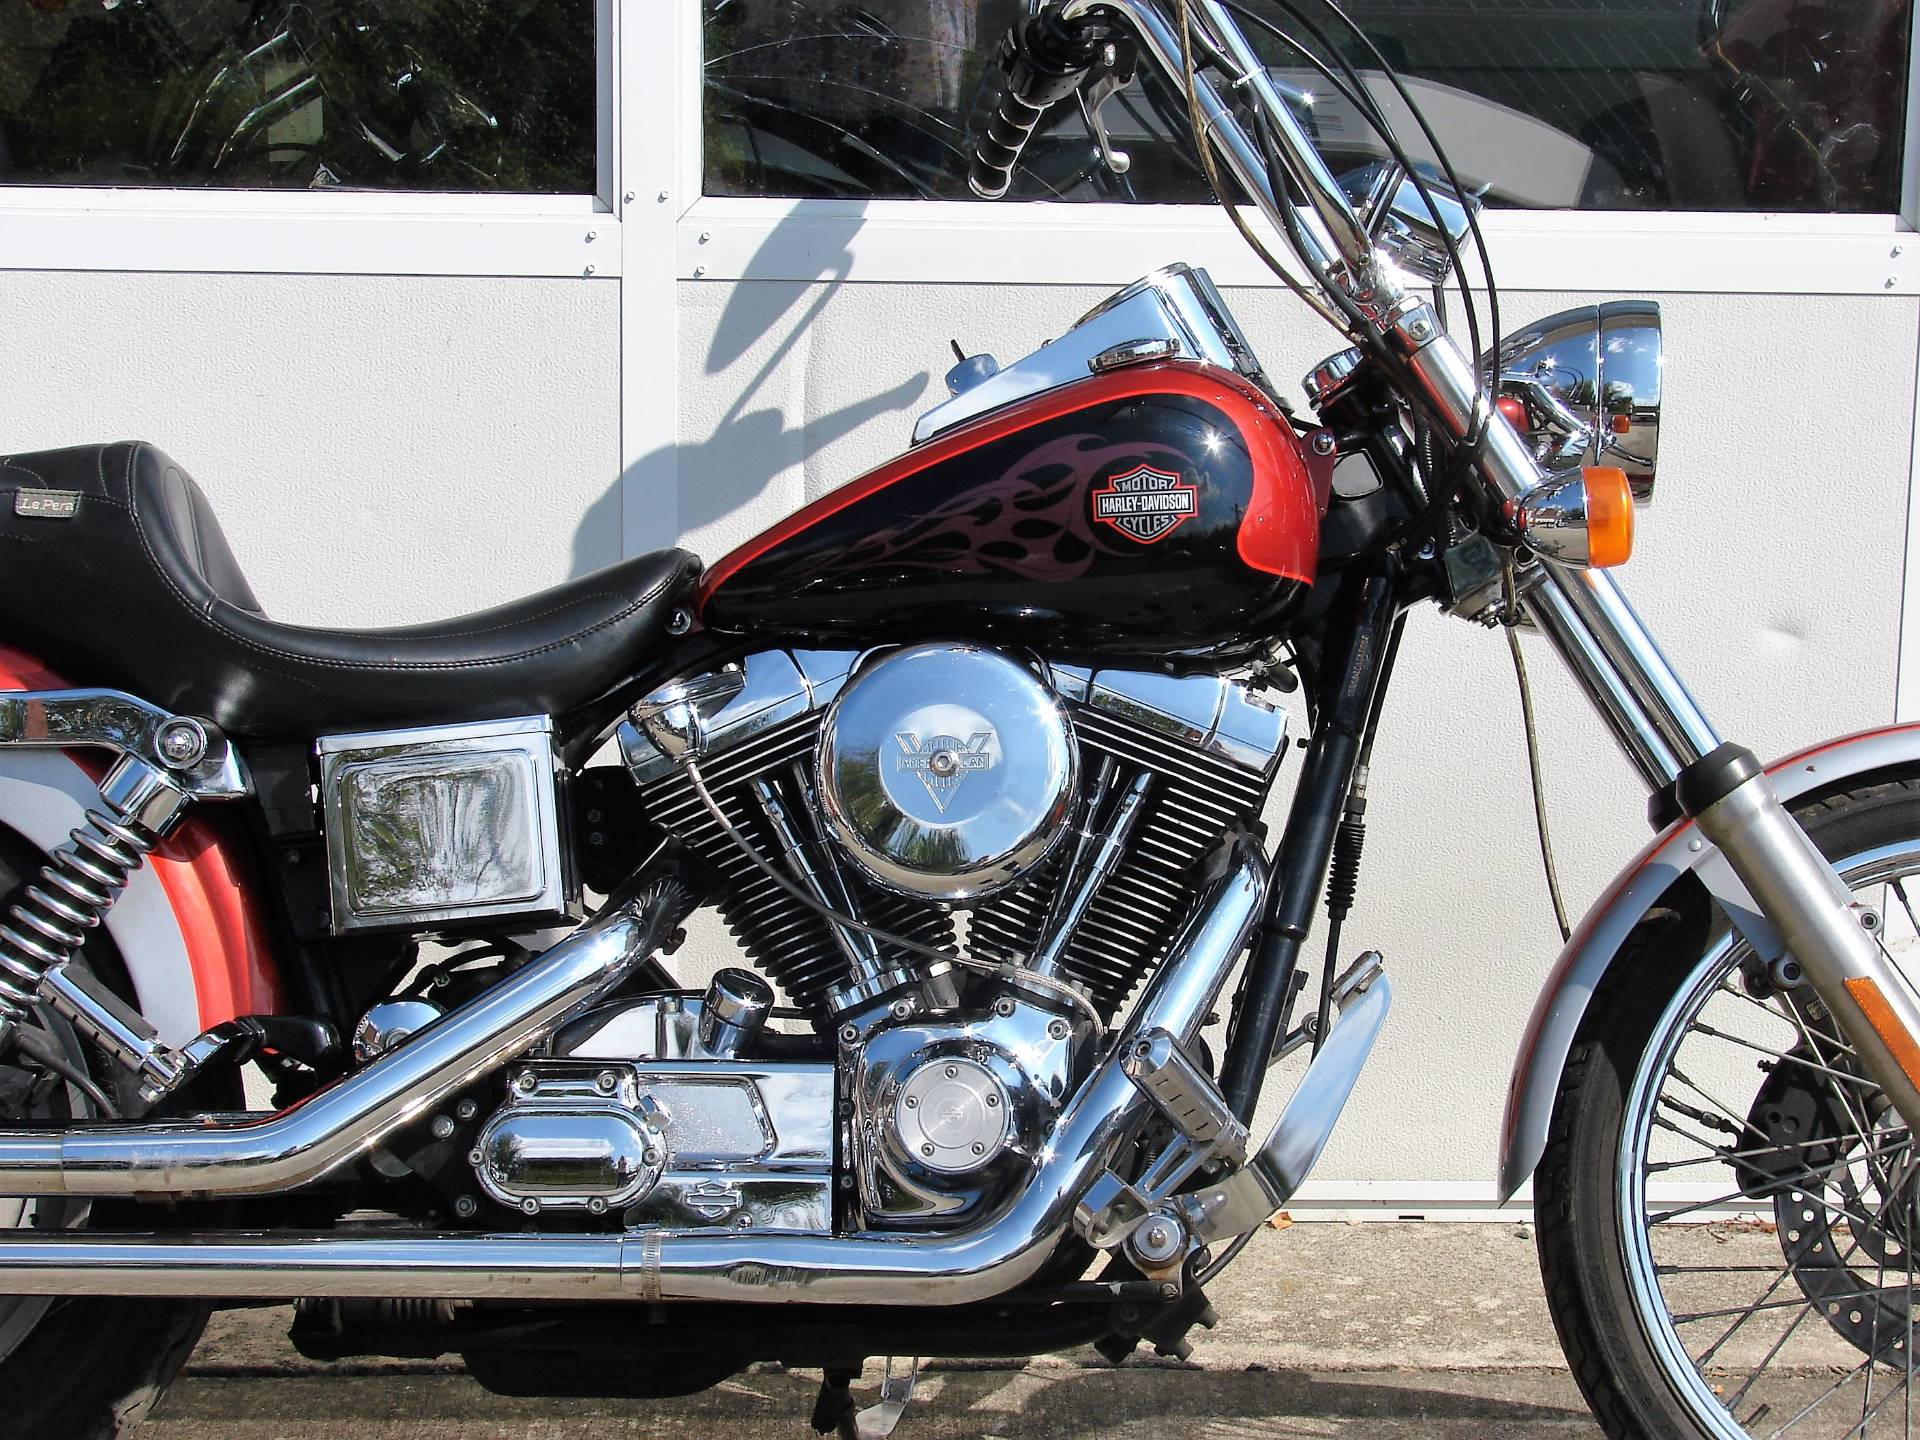 2000 Harley-Davidson FXDWG Dyna Wide Glide in Williamstown, New Jersey - Photo 2